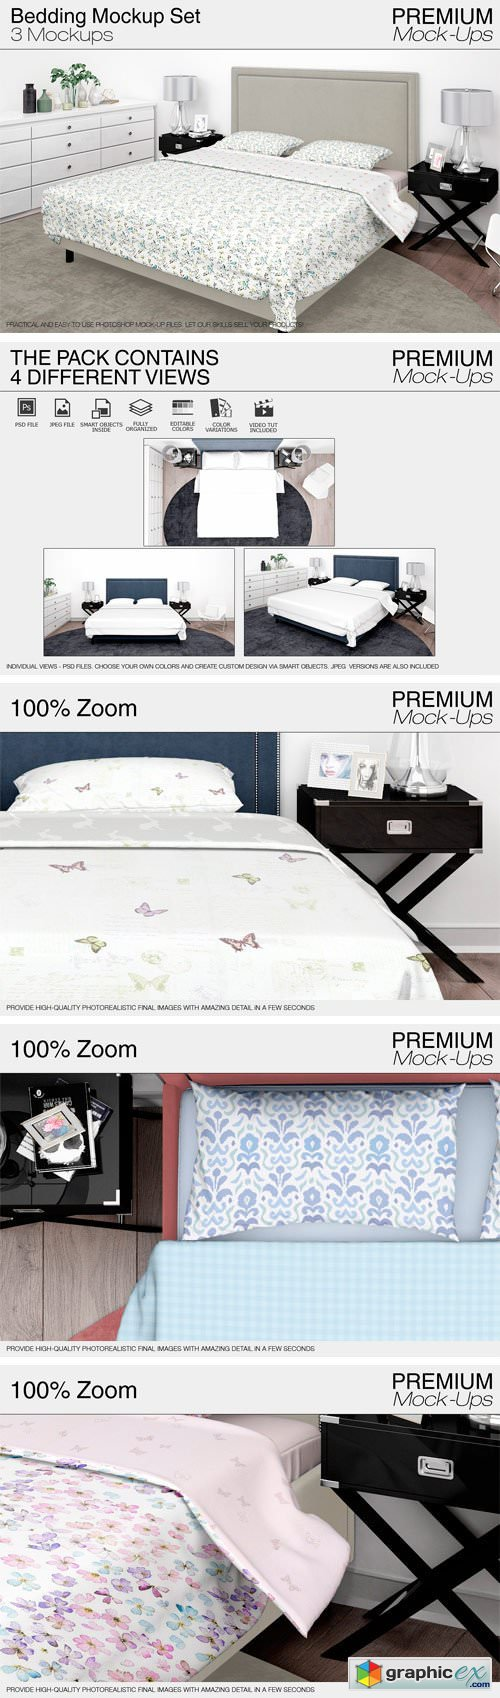 Bedding Mockup Set 1828056